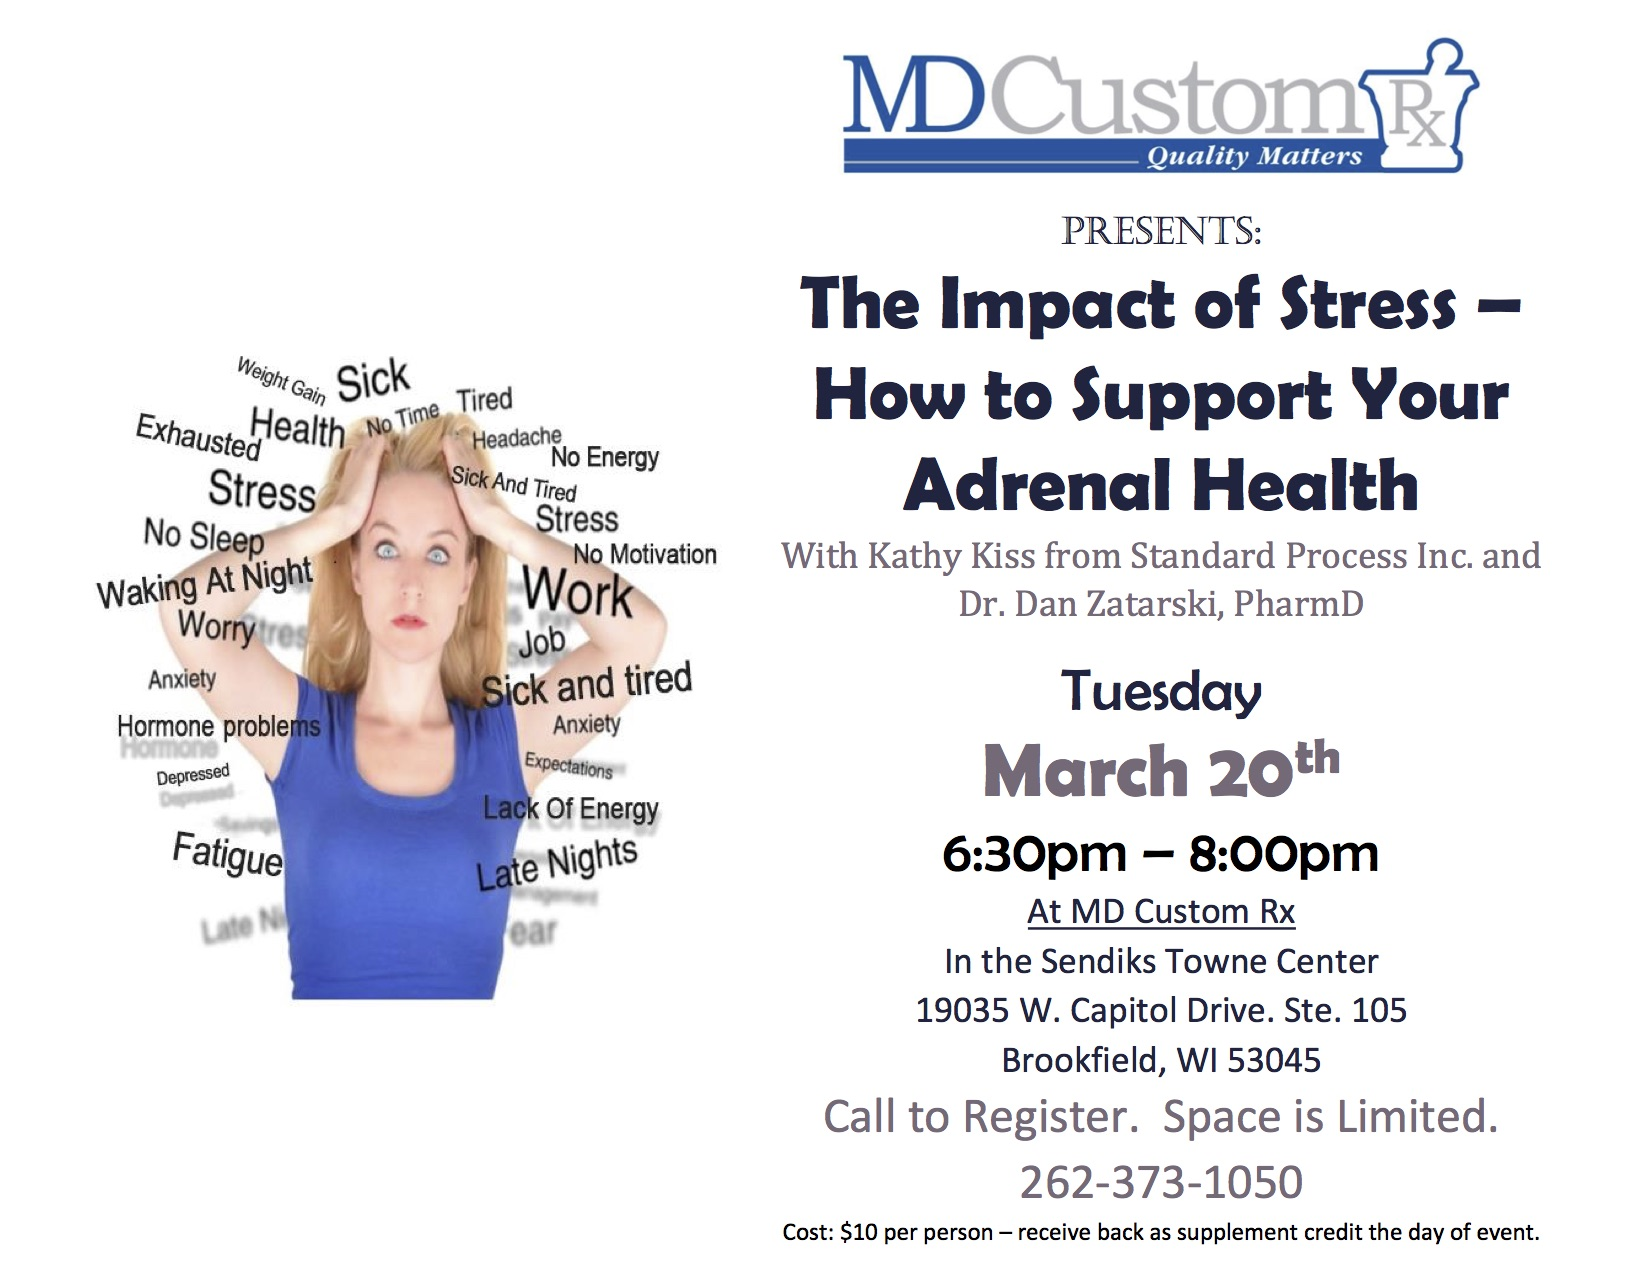 The Impact of Stress – How to Support Your Adrenal Health With Kathy Kiss from Standard Process Inc. and Dr. Dan Zatarski, PharmD